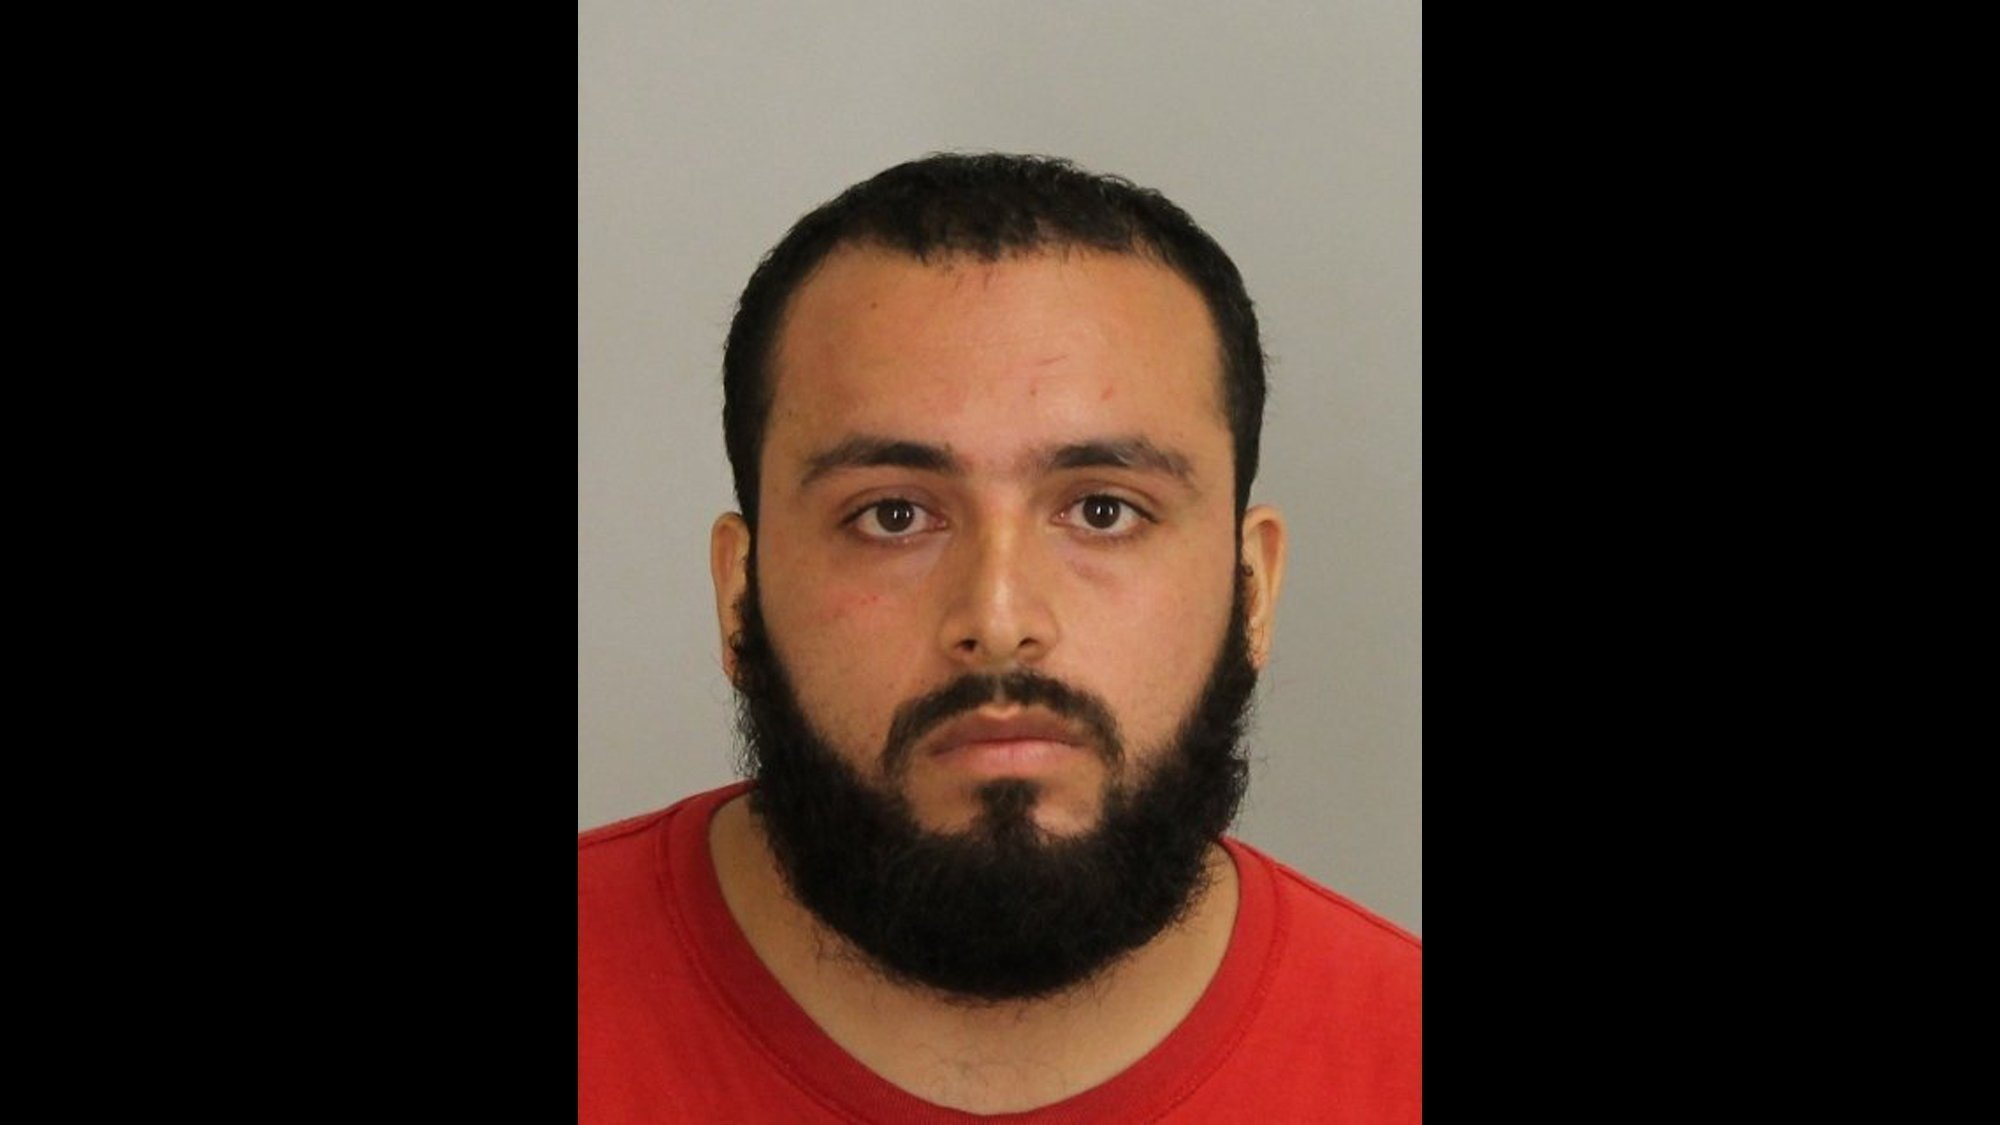 Ahmad Khan Rahimi, convicted in bombings that injured 30 people in New York and New Jersey, is to be sentenced Tuesday, February 13, 2018.